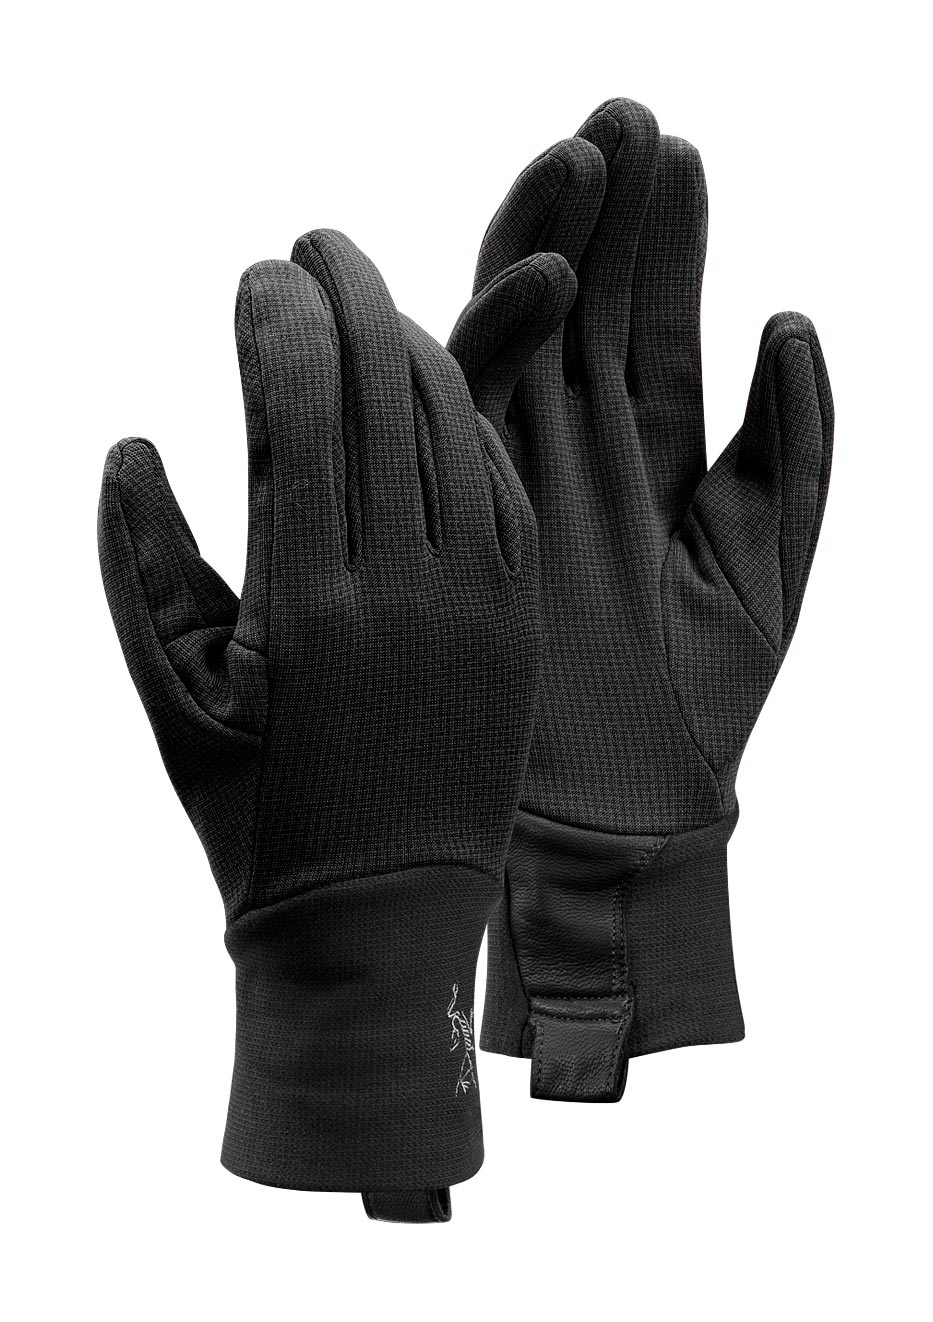 Arcteryx Black Rivet AR Glove